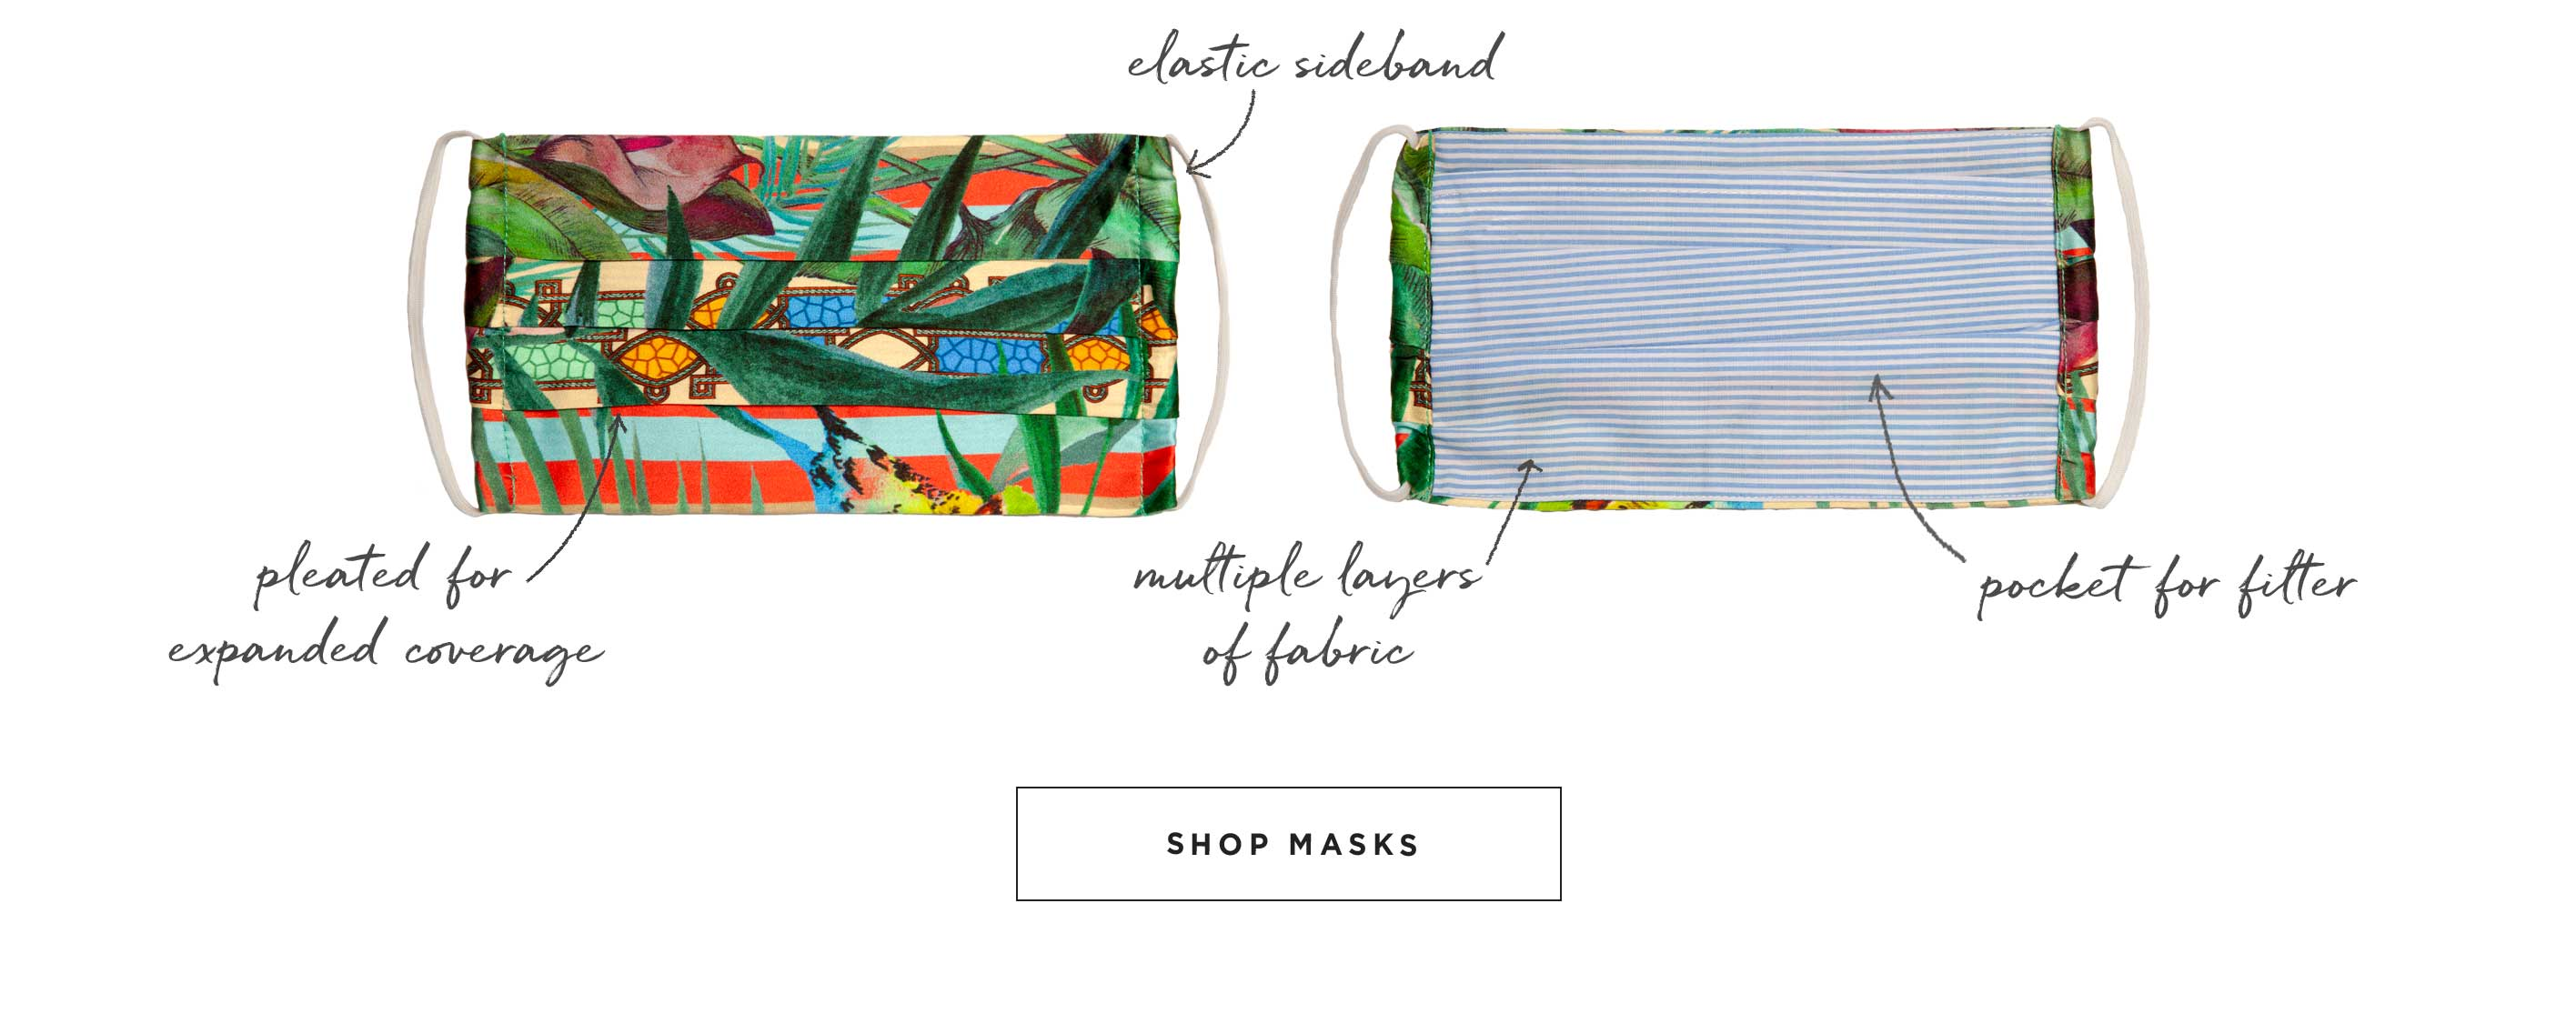 Elastic Sideband, Pleated for Expanded Coverage, Multiple Layers of Fabric, Pocket for Filter - Shop Masks